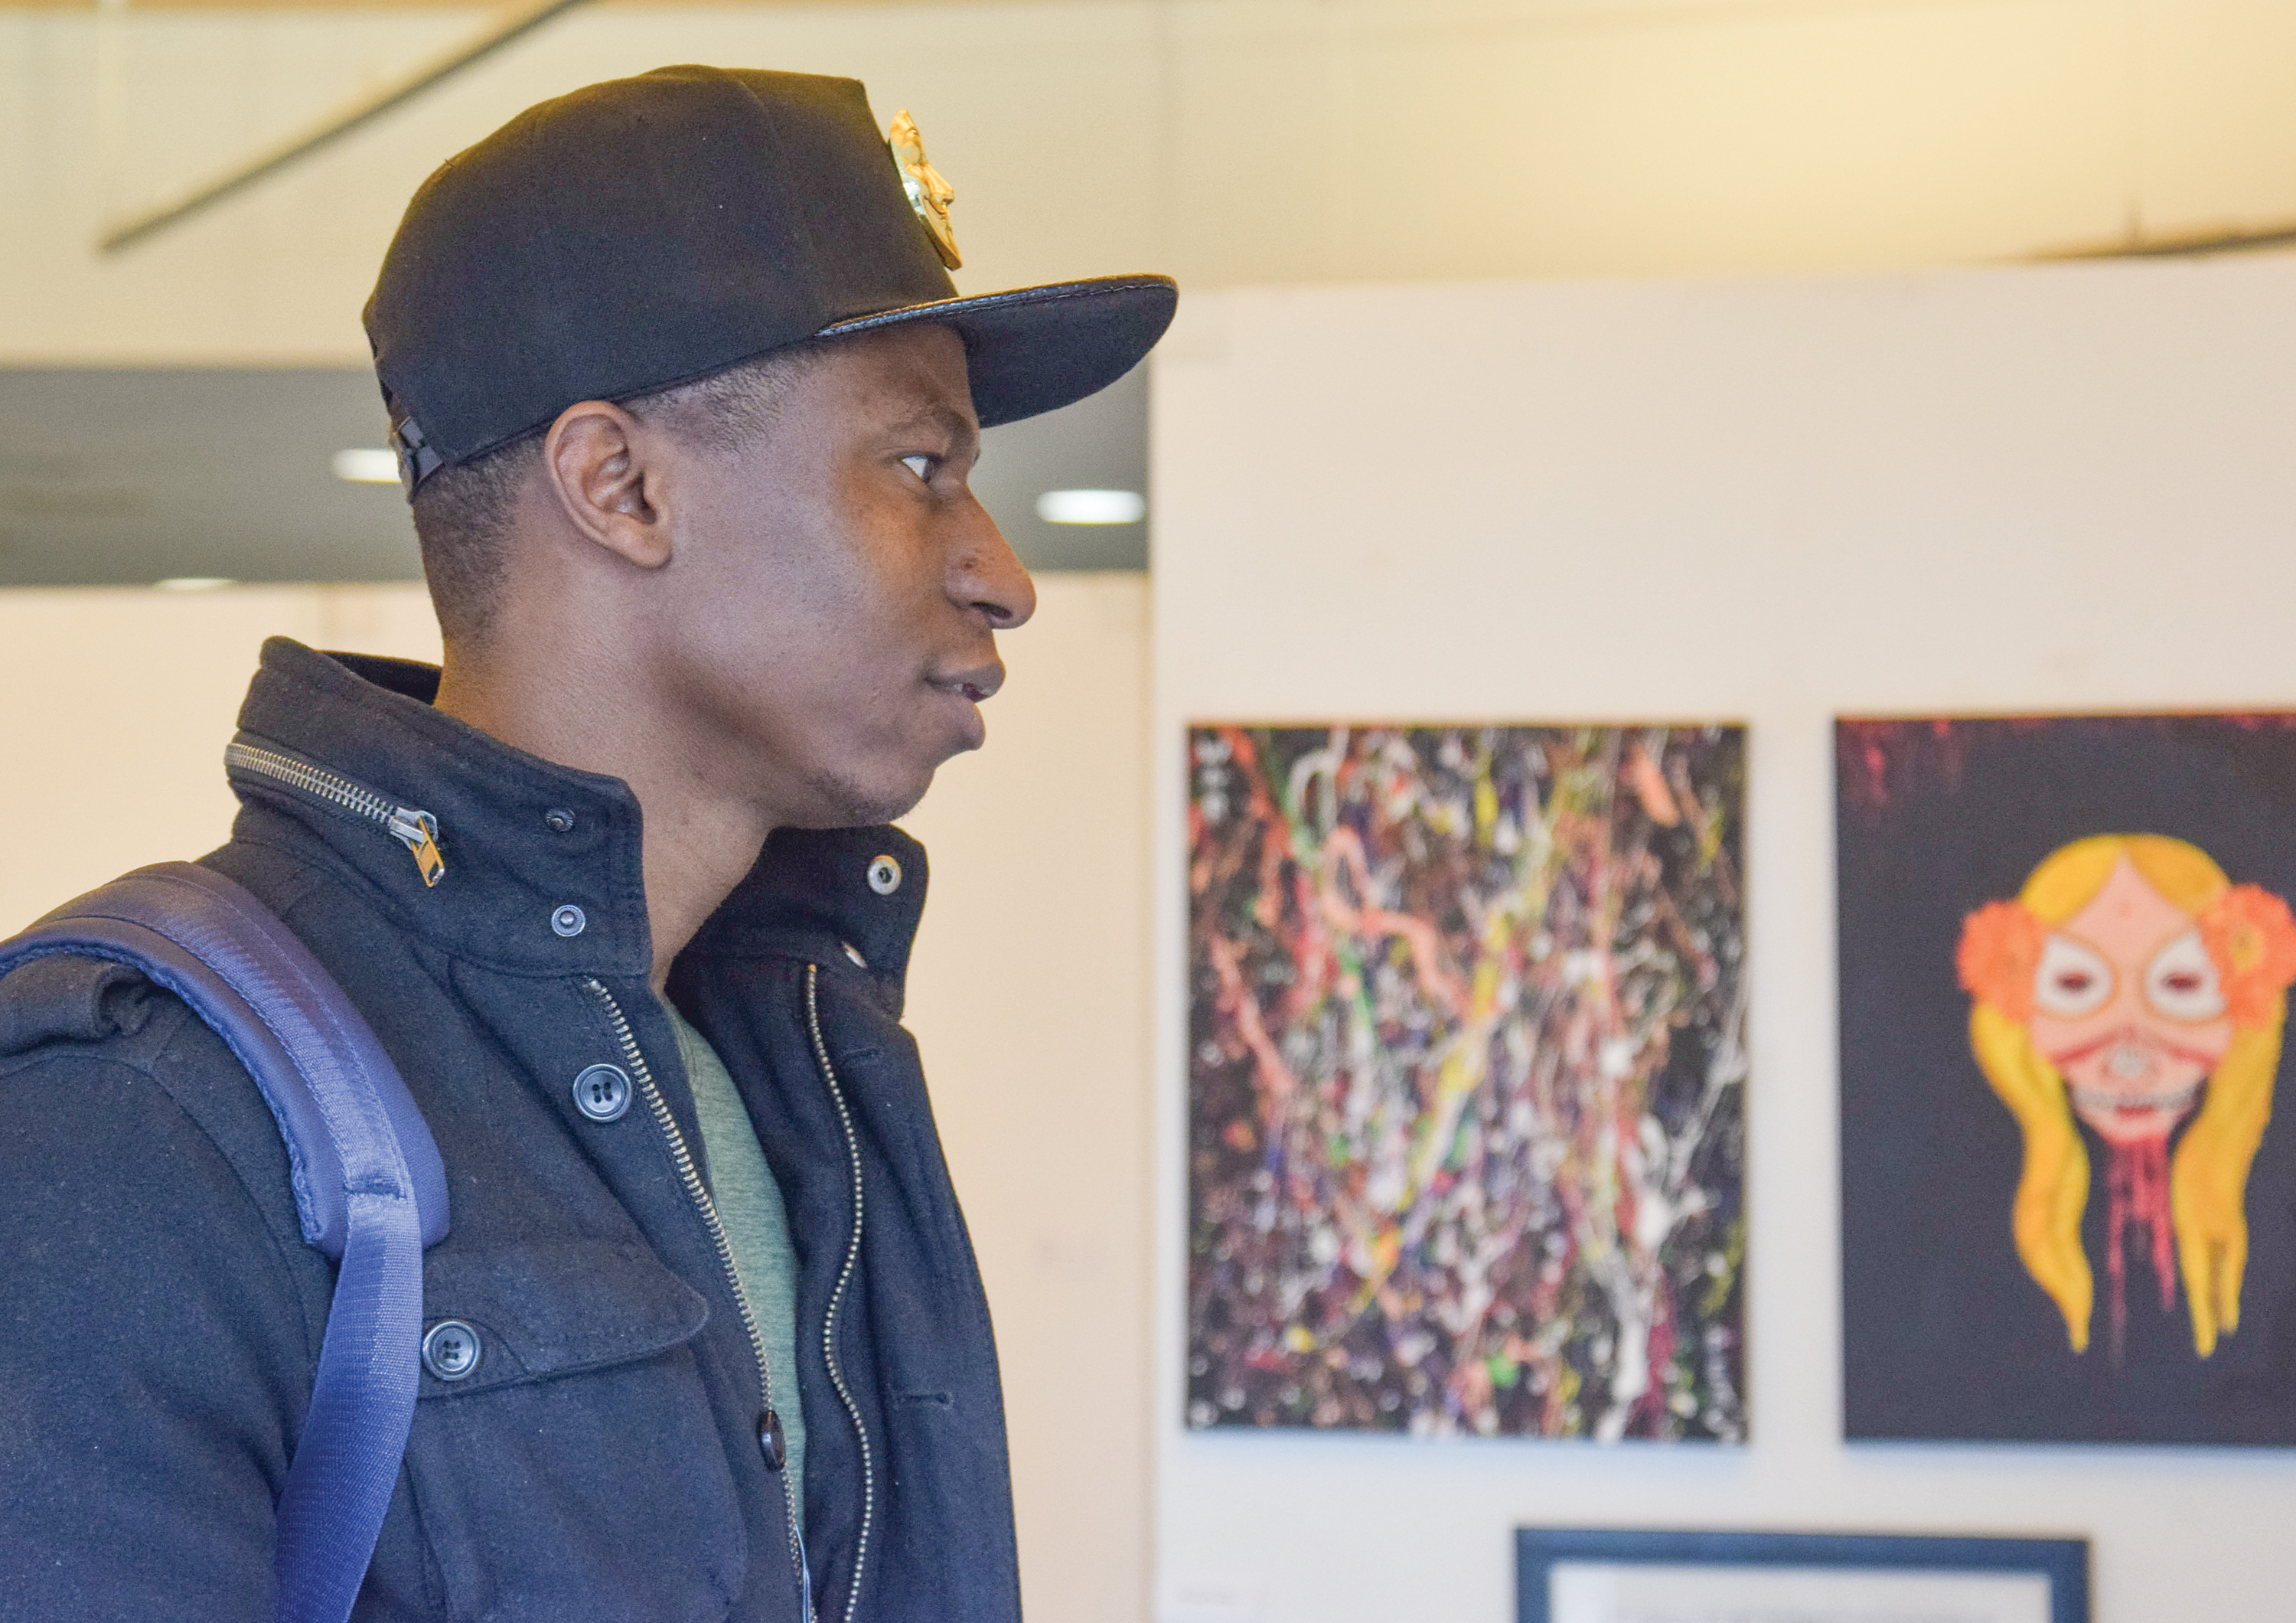 Students view artist pieces at the Associate of Fine Arts Exhibit